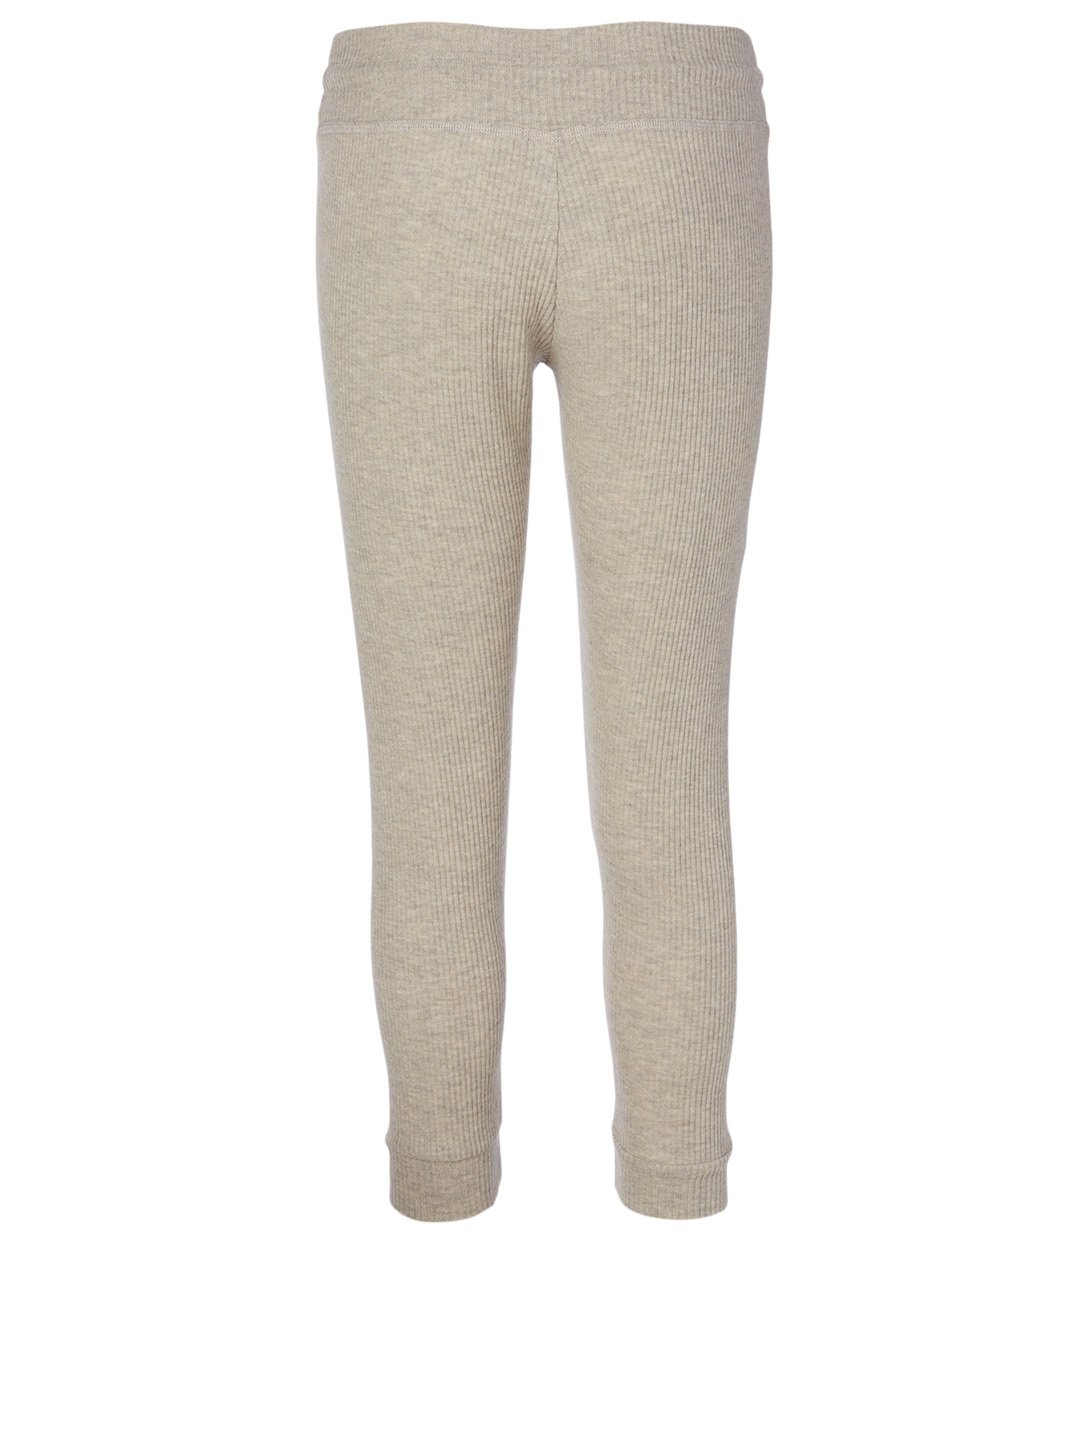 BEYOND YOGA Brushed Up Lounge Around Midi Joggers Women's Neutral